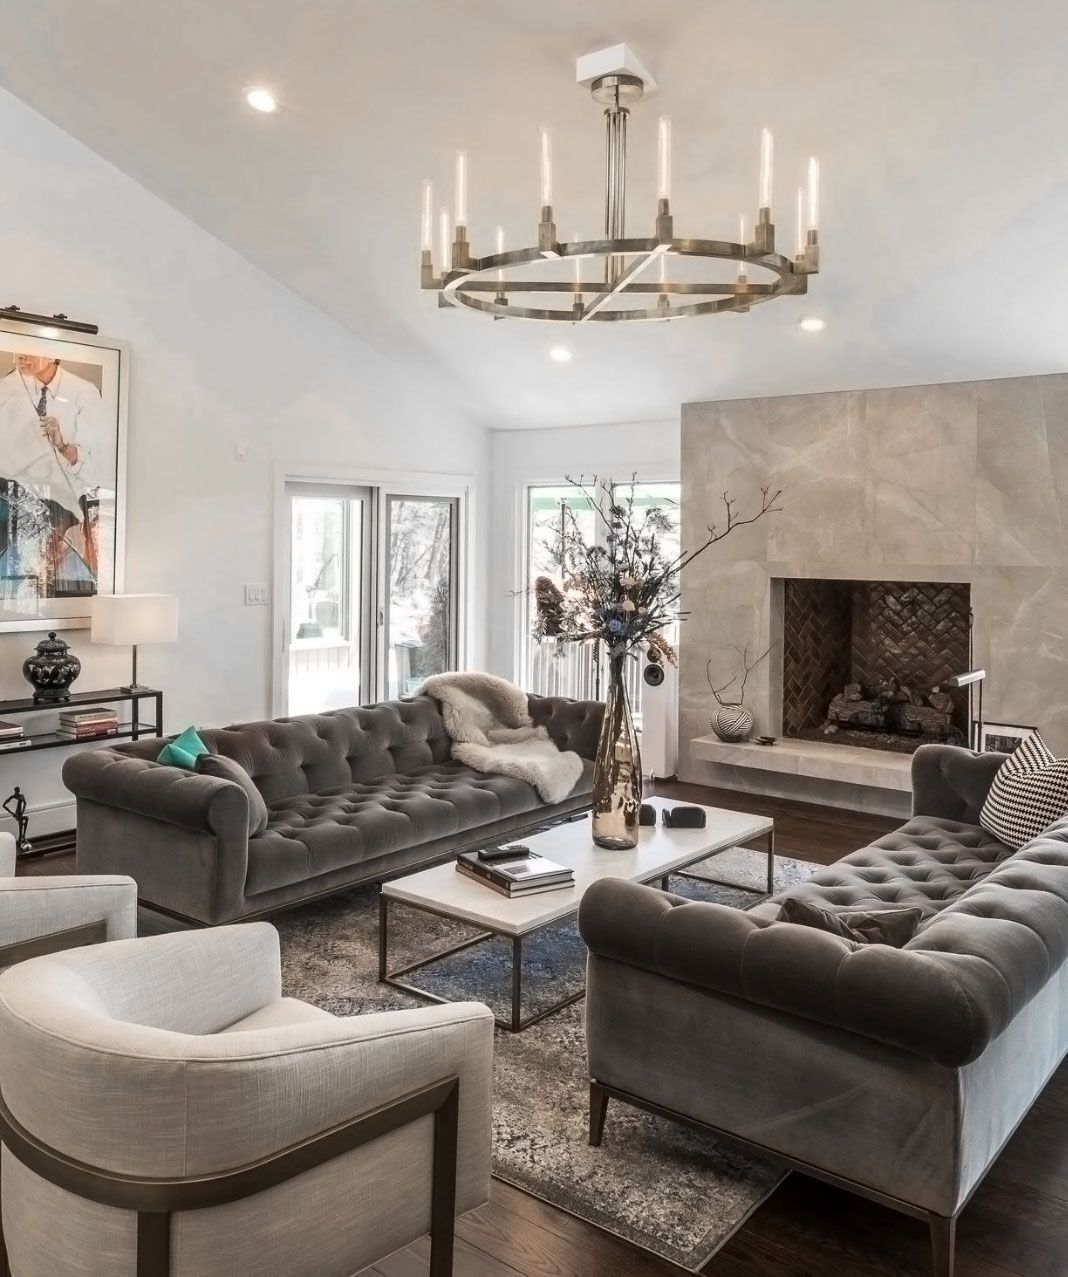 Restoration Hardware Style Inspired Grey Living Room Decor With